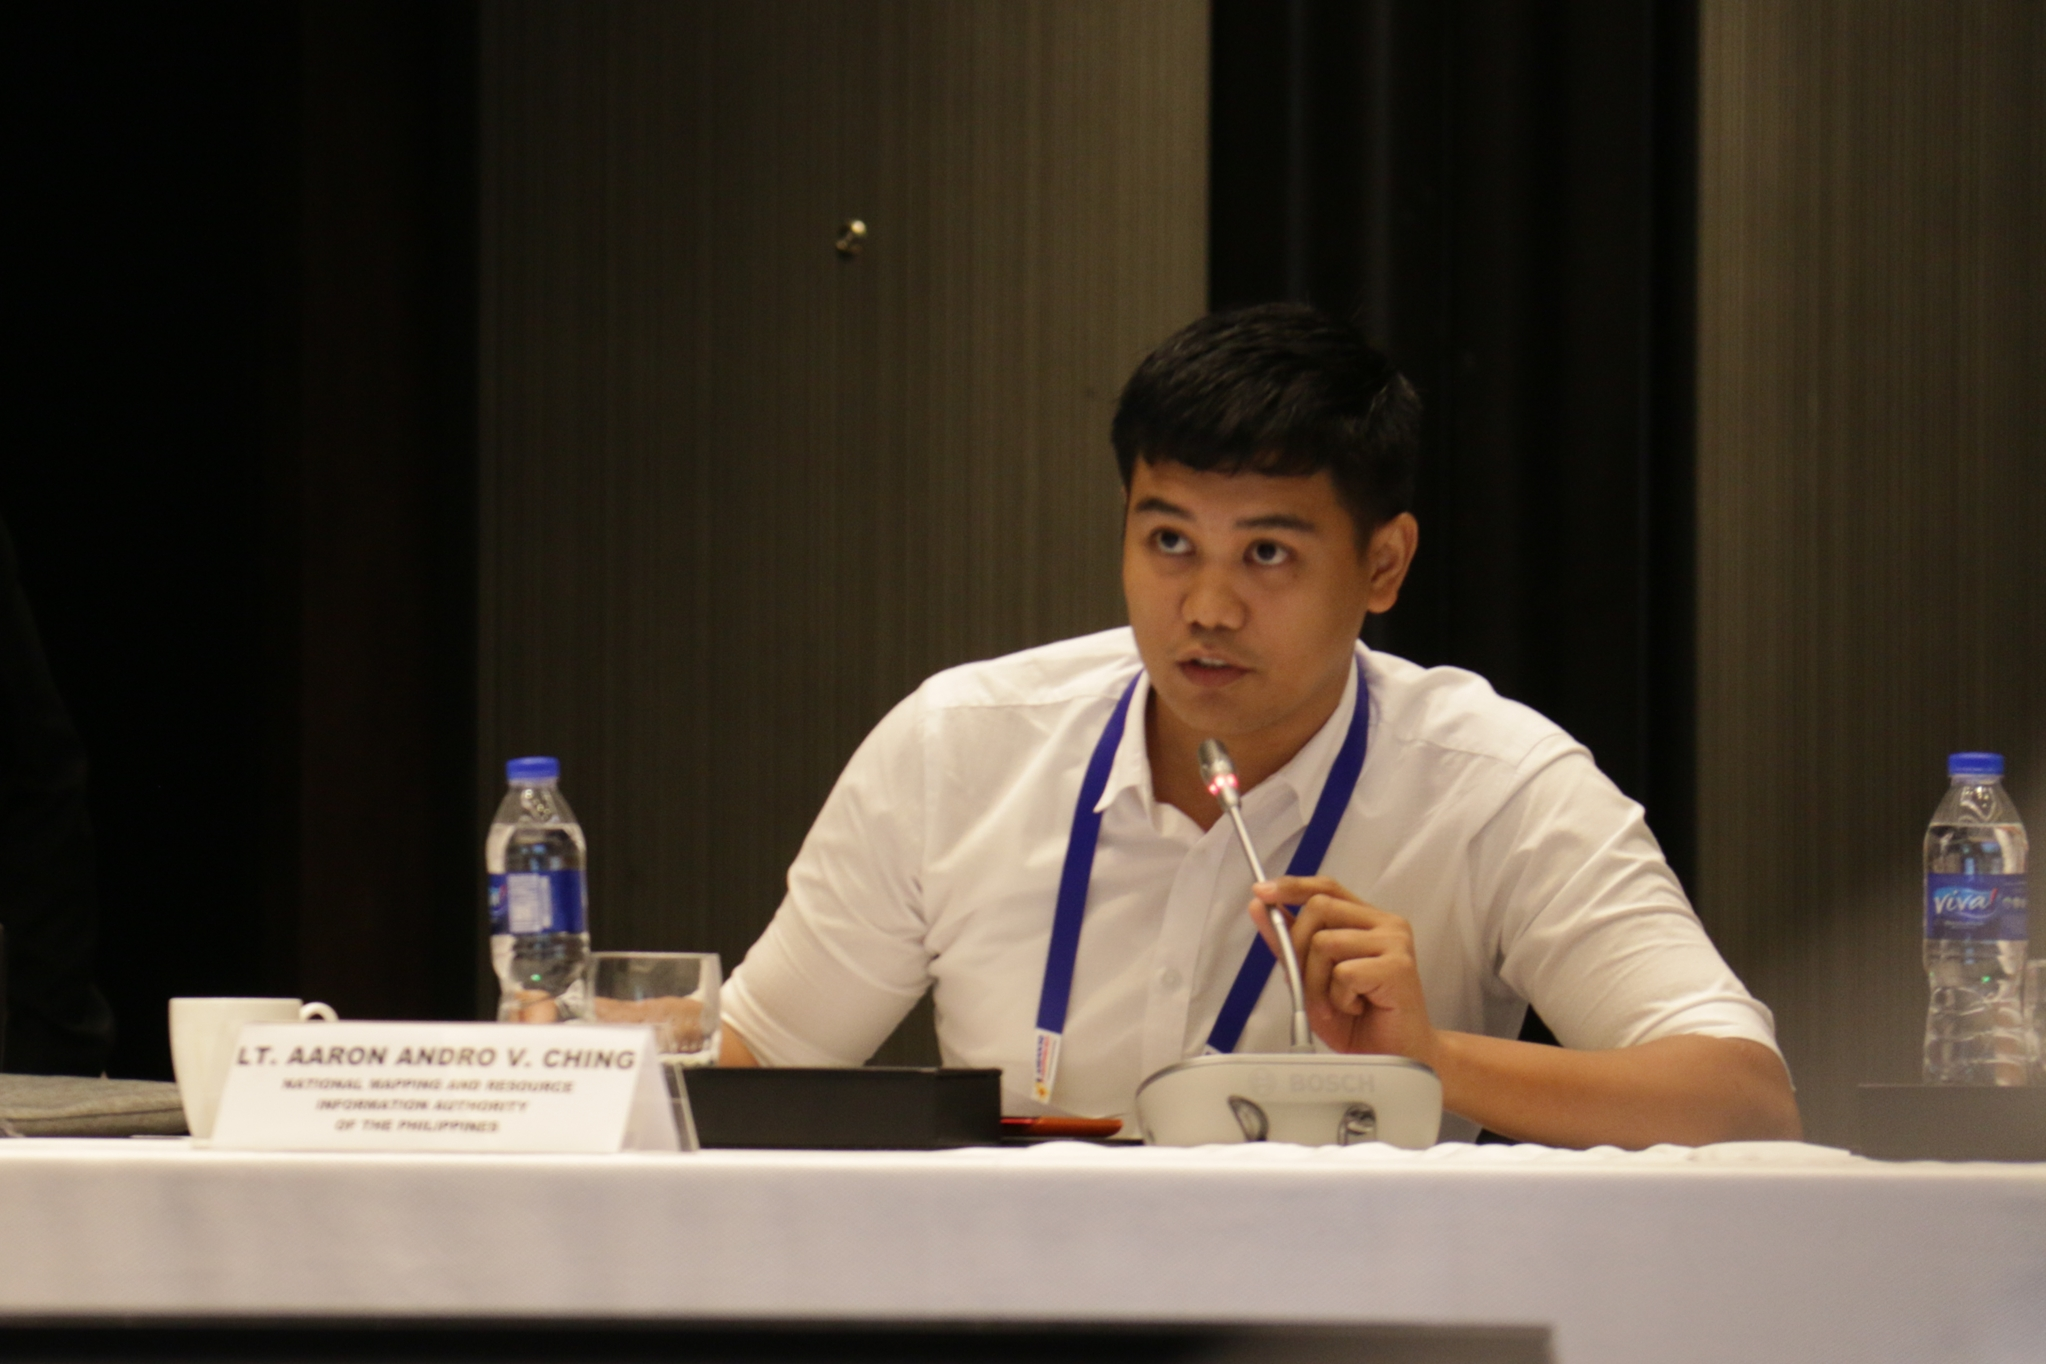 Lt Aaron Andro Ching of Hydrography Branch discuss during the ASEAN Regional Forum Workshop on Best Practices in Implementing Safety of Navigation Instruments